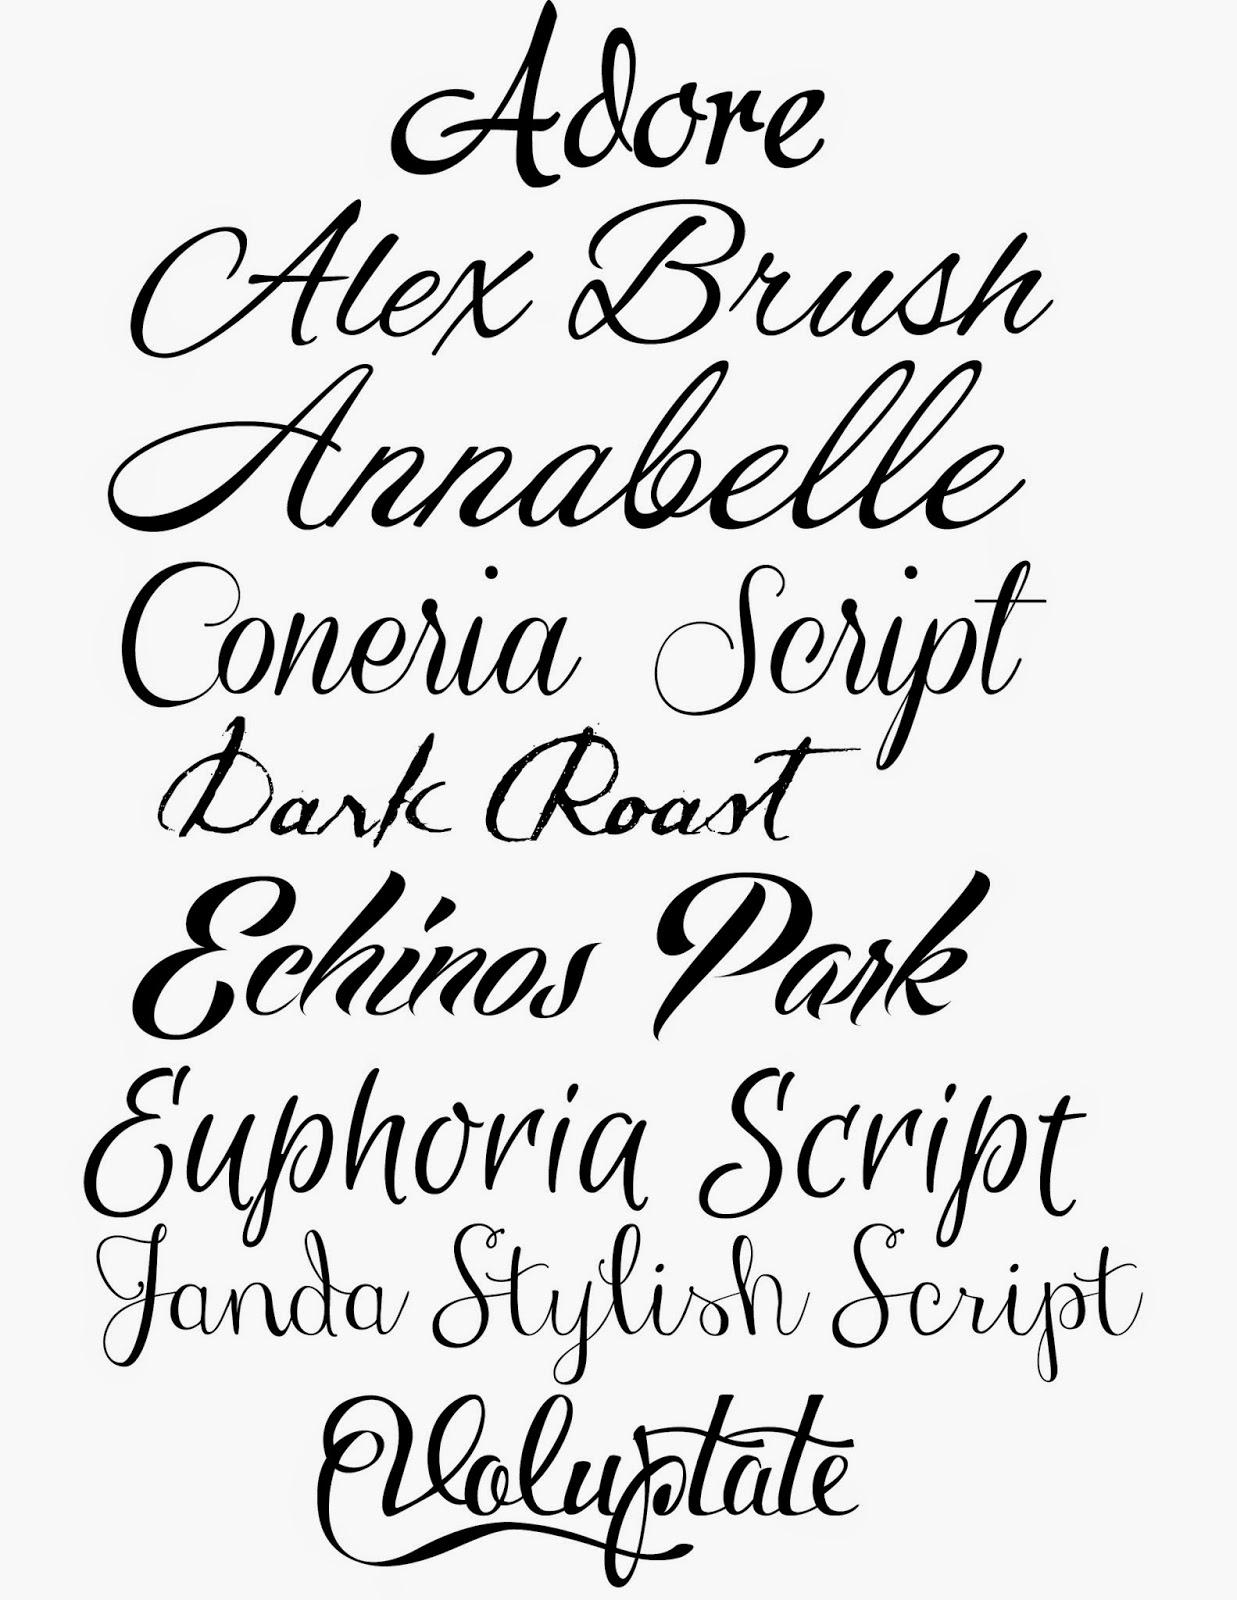 And If All Else Failsdownload One Of These FREE Fabulous Script Calligraphy Cursive Fonts